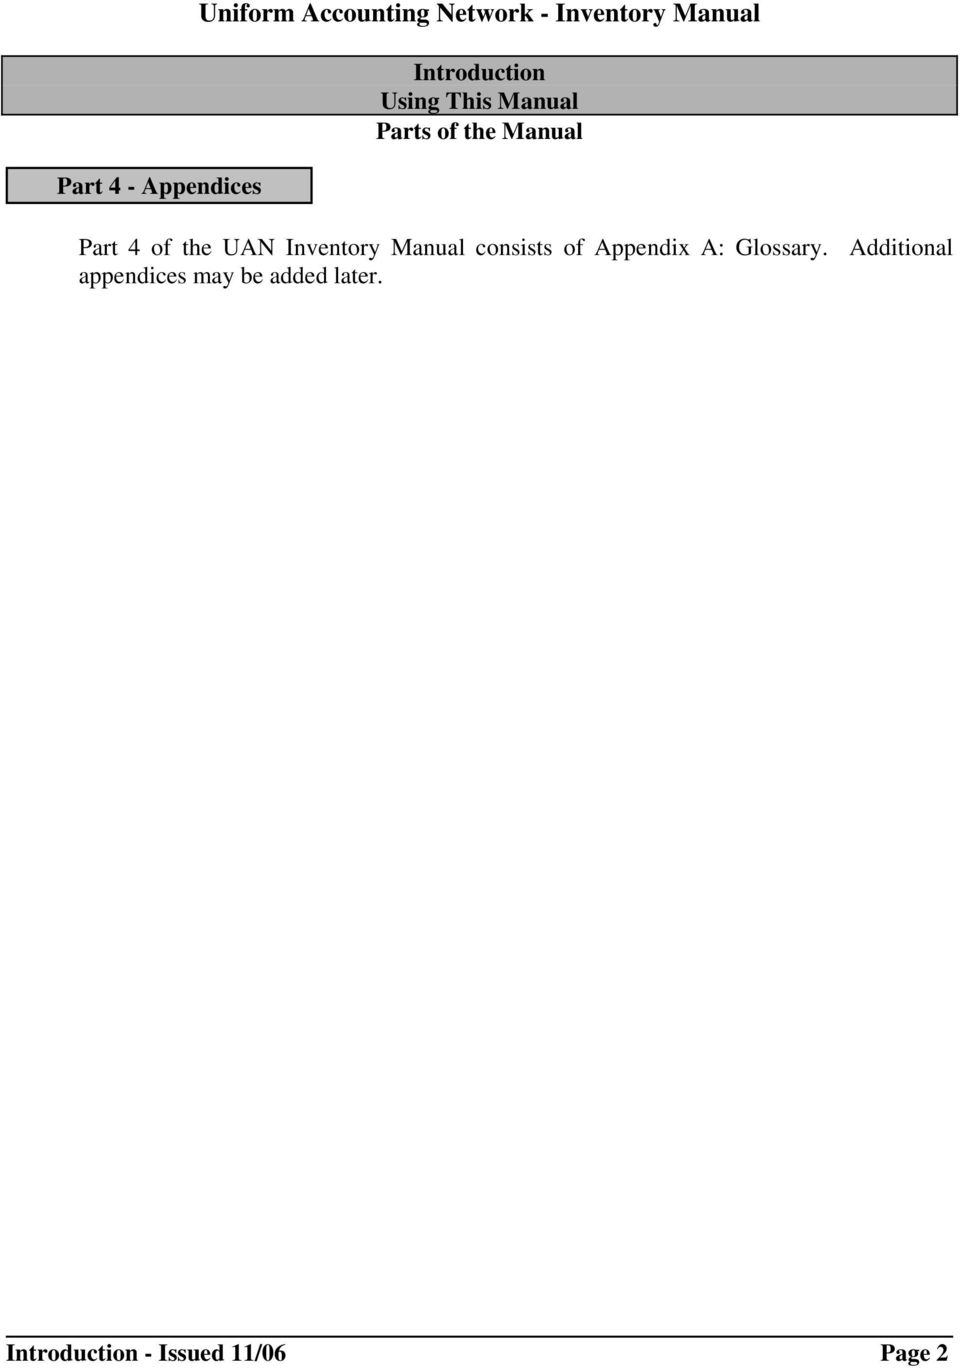 UAN Inventory Manual consists of Appendix A: Glossary.